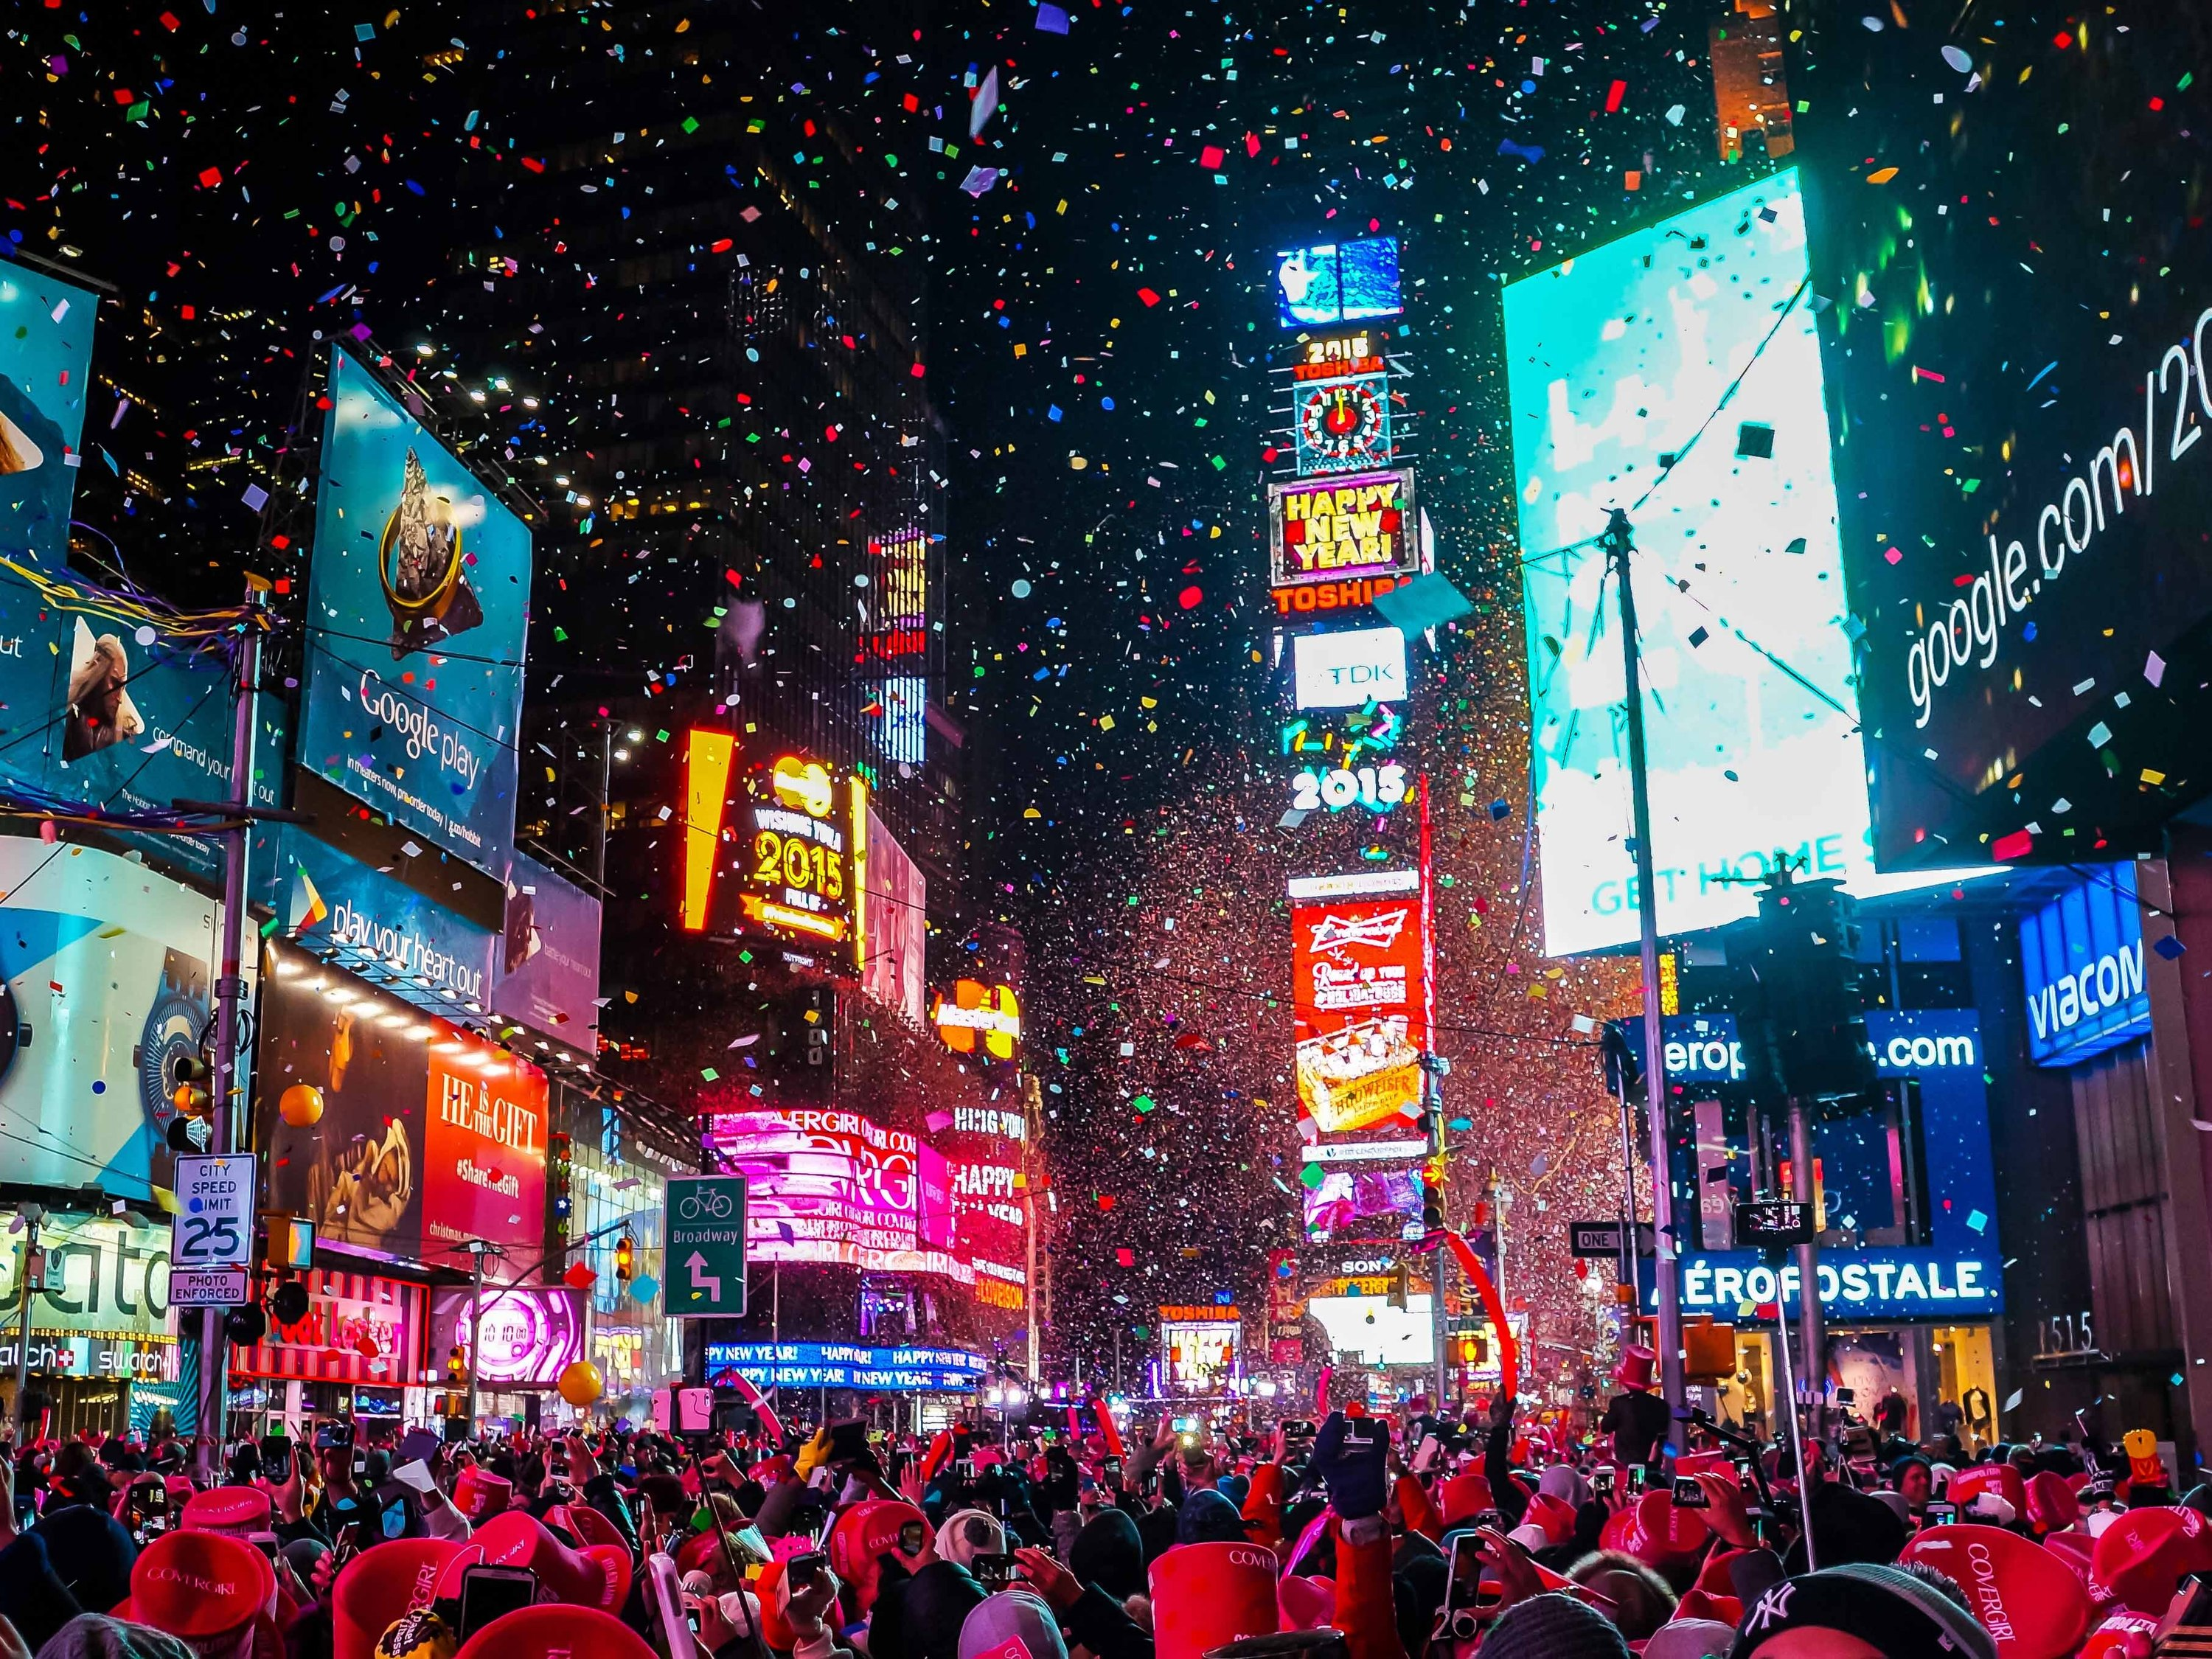 Here's how the Times Square New Year's Eve celebration will be different this year